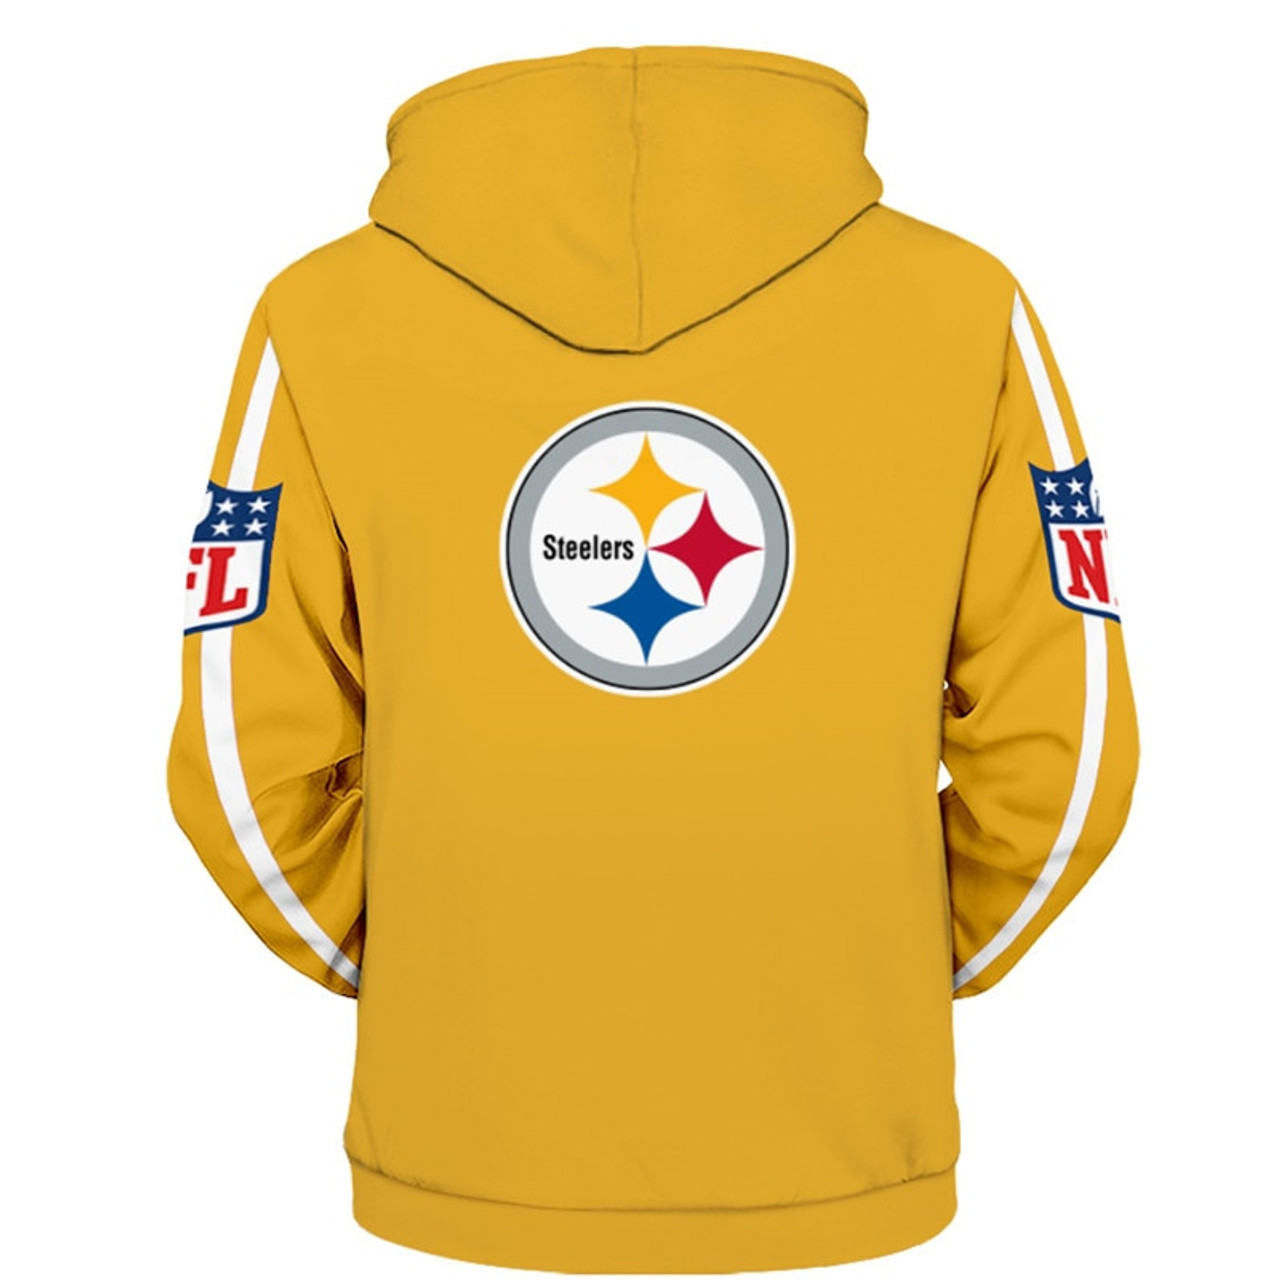 low priced ae218 827b1 **(OFFICIALLY-LICENSED-N.F.L.PITTSBURGH-STEELERS-ZIPPER-UP-FRONT-HOODIES/ALL-OVER-GRAPHIC-3D-PRINTED-IN-STEELERS-TEAM-COLORS/NICE-DETAILED-PREMIUM-DOU...